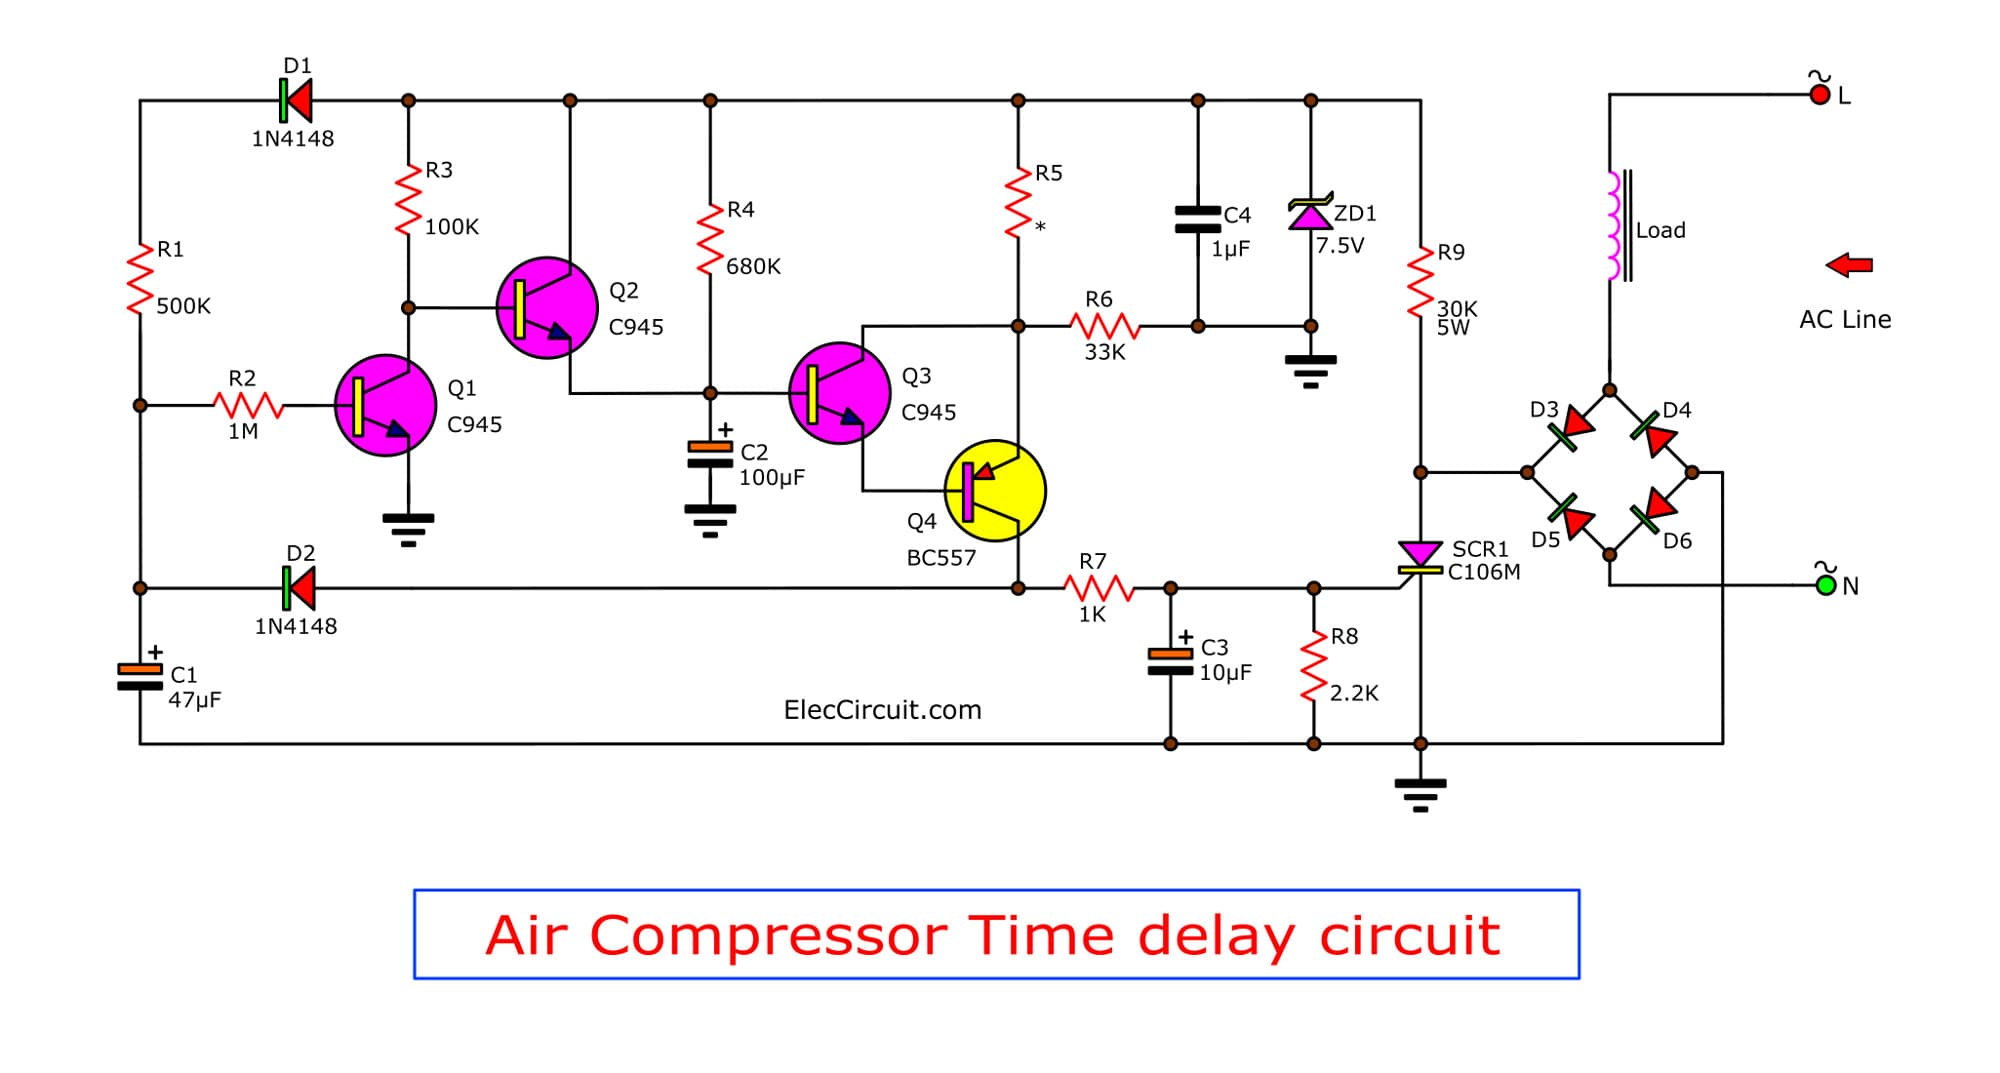 Wiring Diagram For A Air Compressor - Carbonvotemuditblog \u2022